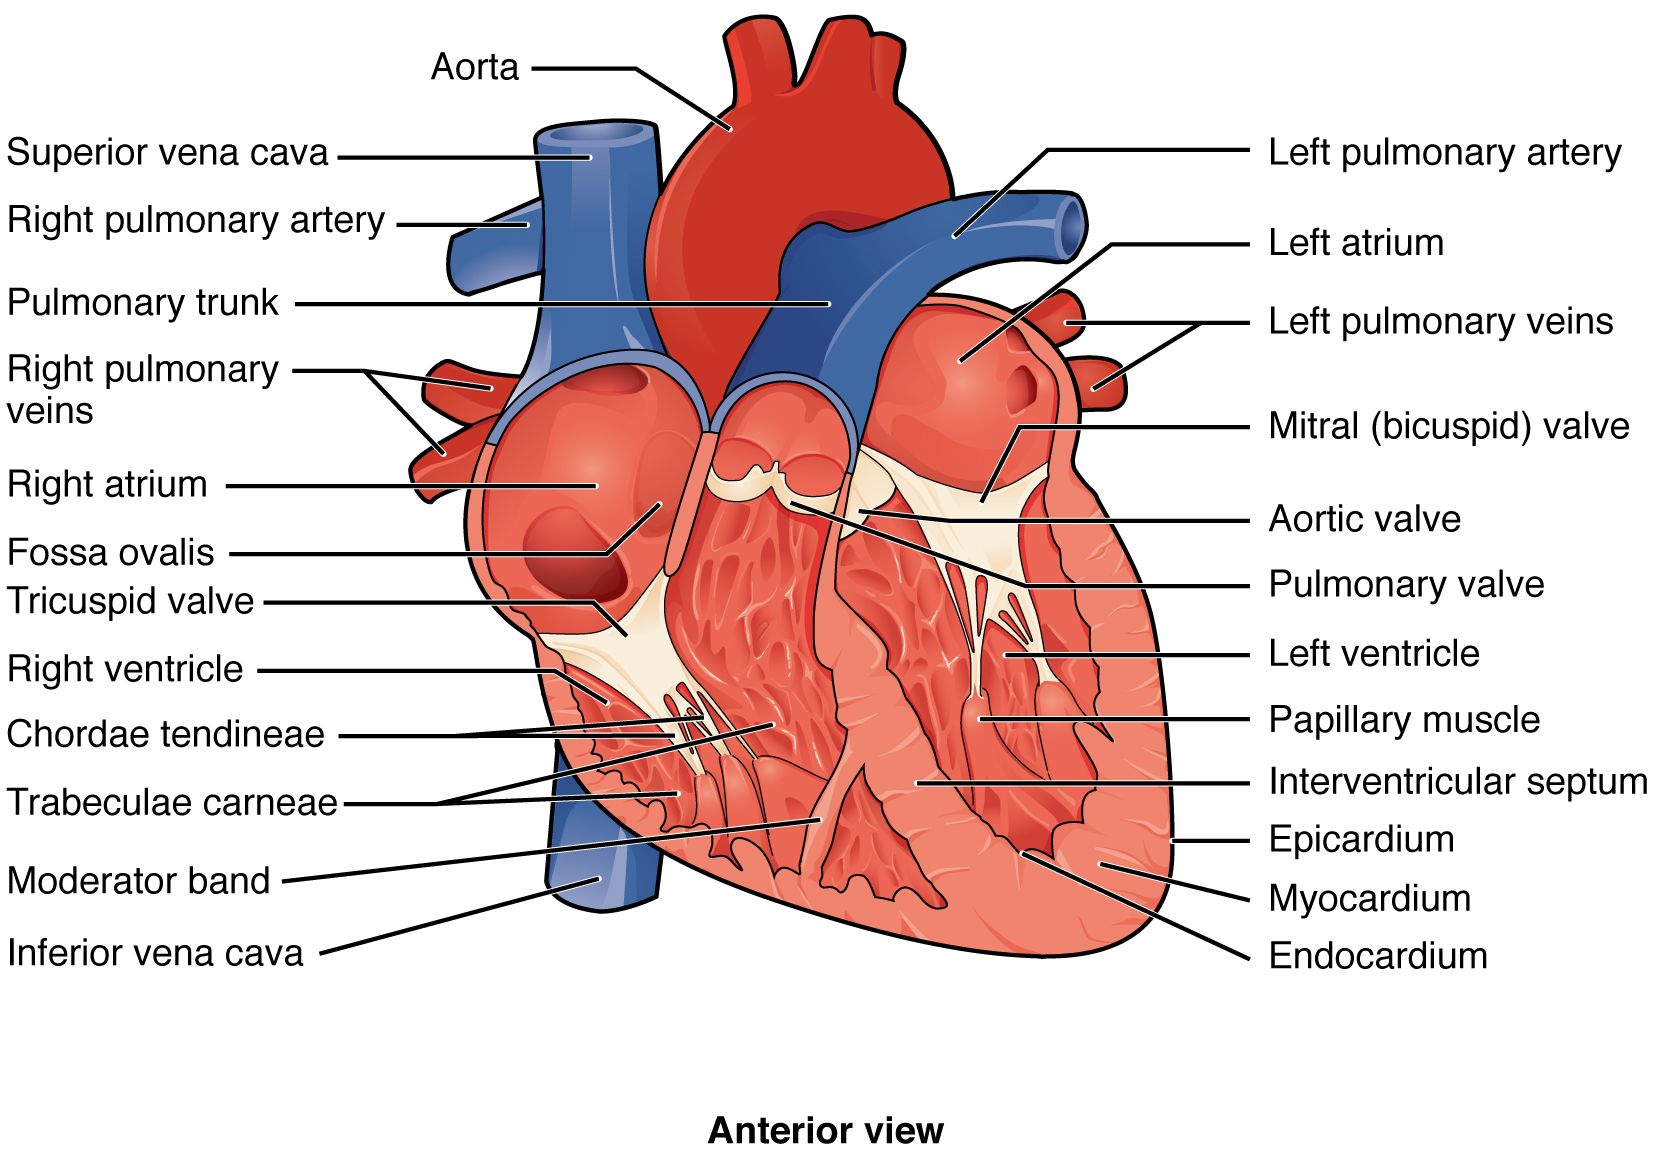 label heart anatomy heart anatomy diagram label interior diagr on diagram  of the human organs with labels heart anatomy diagr